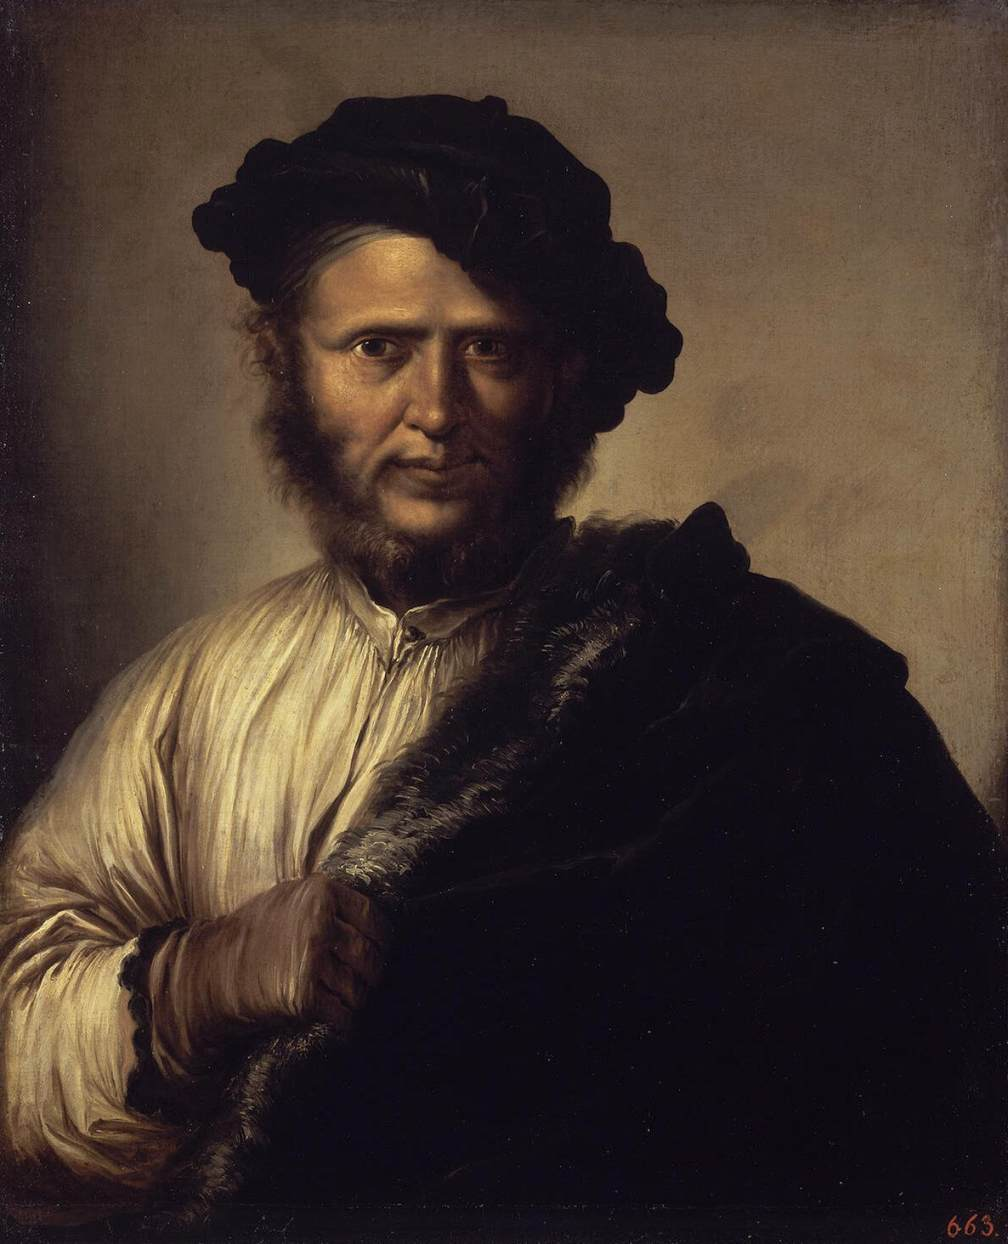 Portrait of a Man by Salvator Rosa